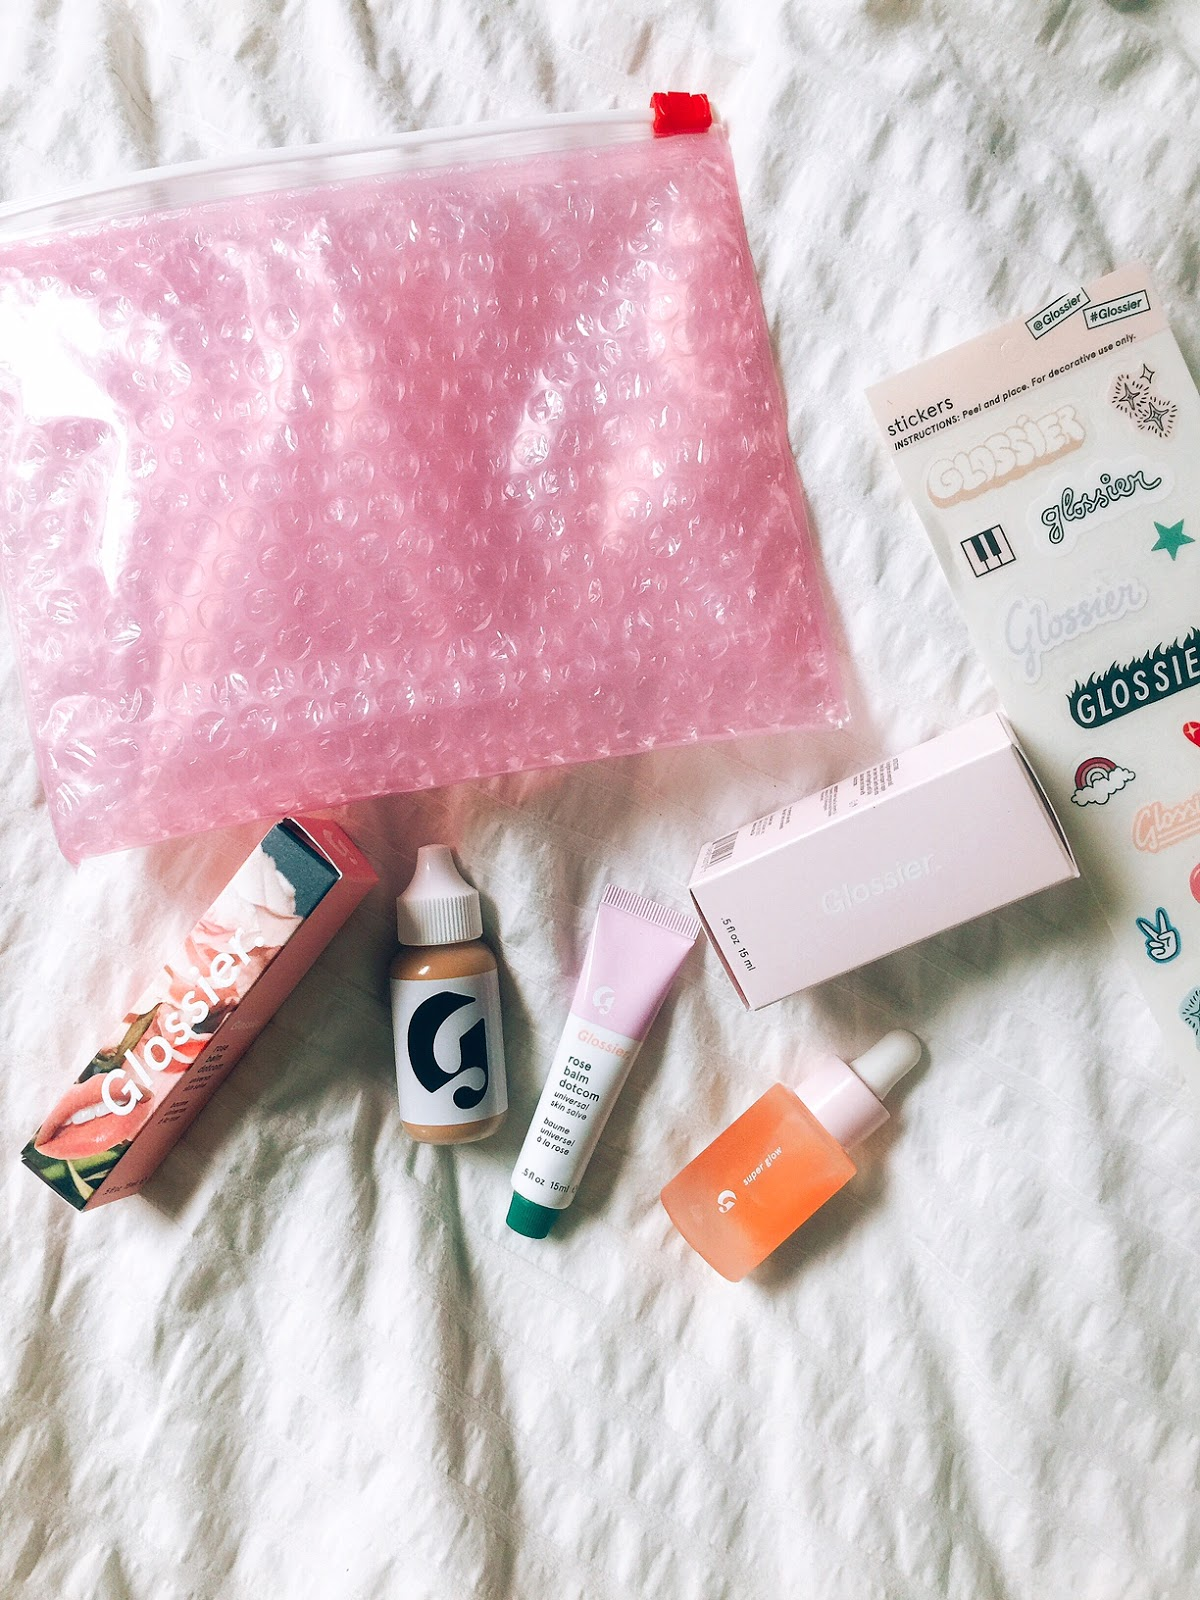 product review, glossier, balm dot com, portland blogger, lifestyle blogger, make up, skincare, giveaway, freebies,